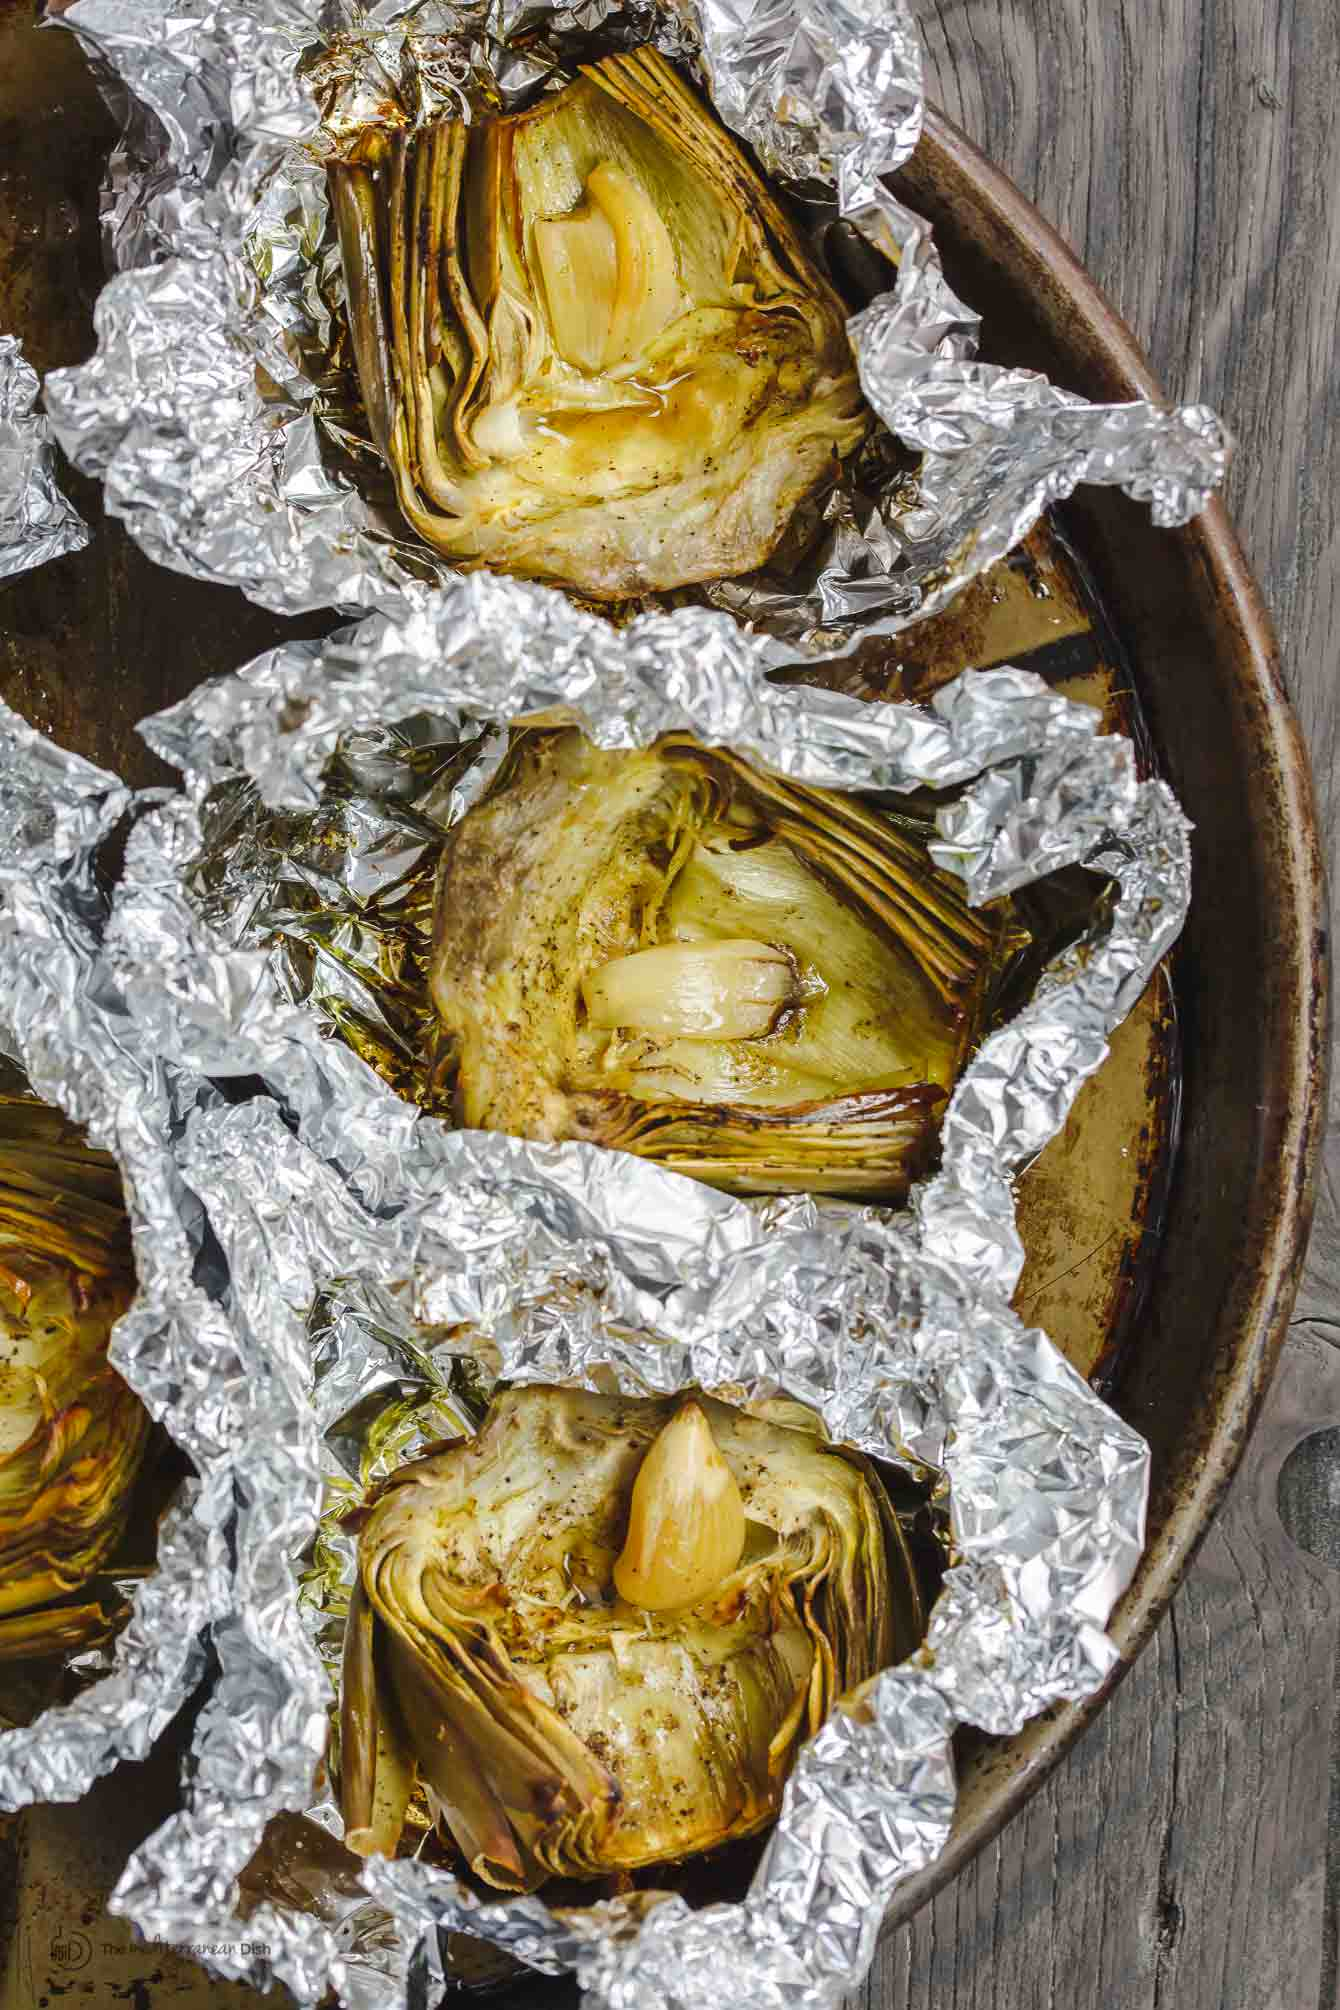 Roasted artichokes with garlic wrapped in aluminum foil